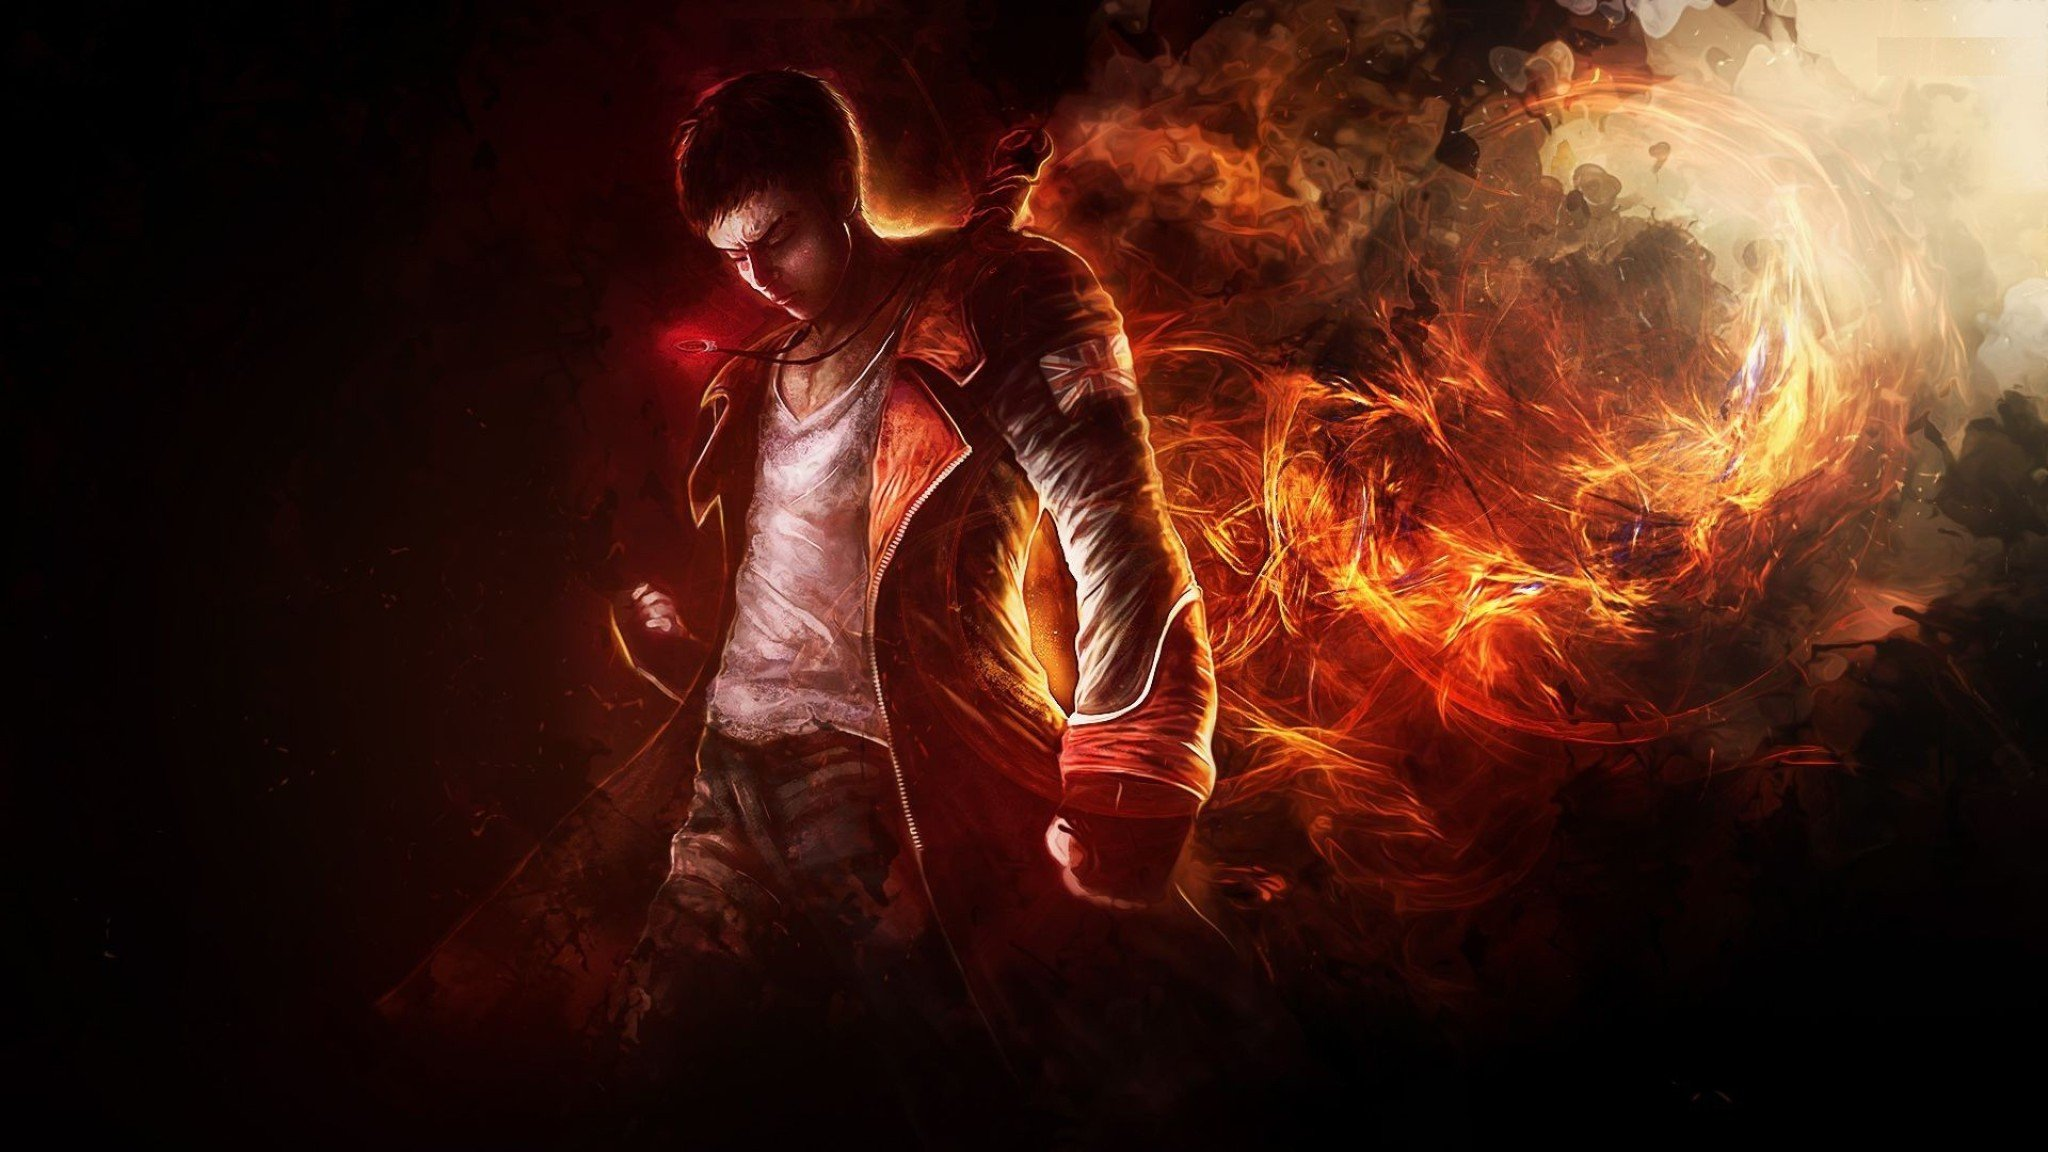 action 3d wallpapers download